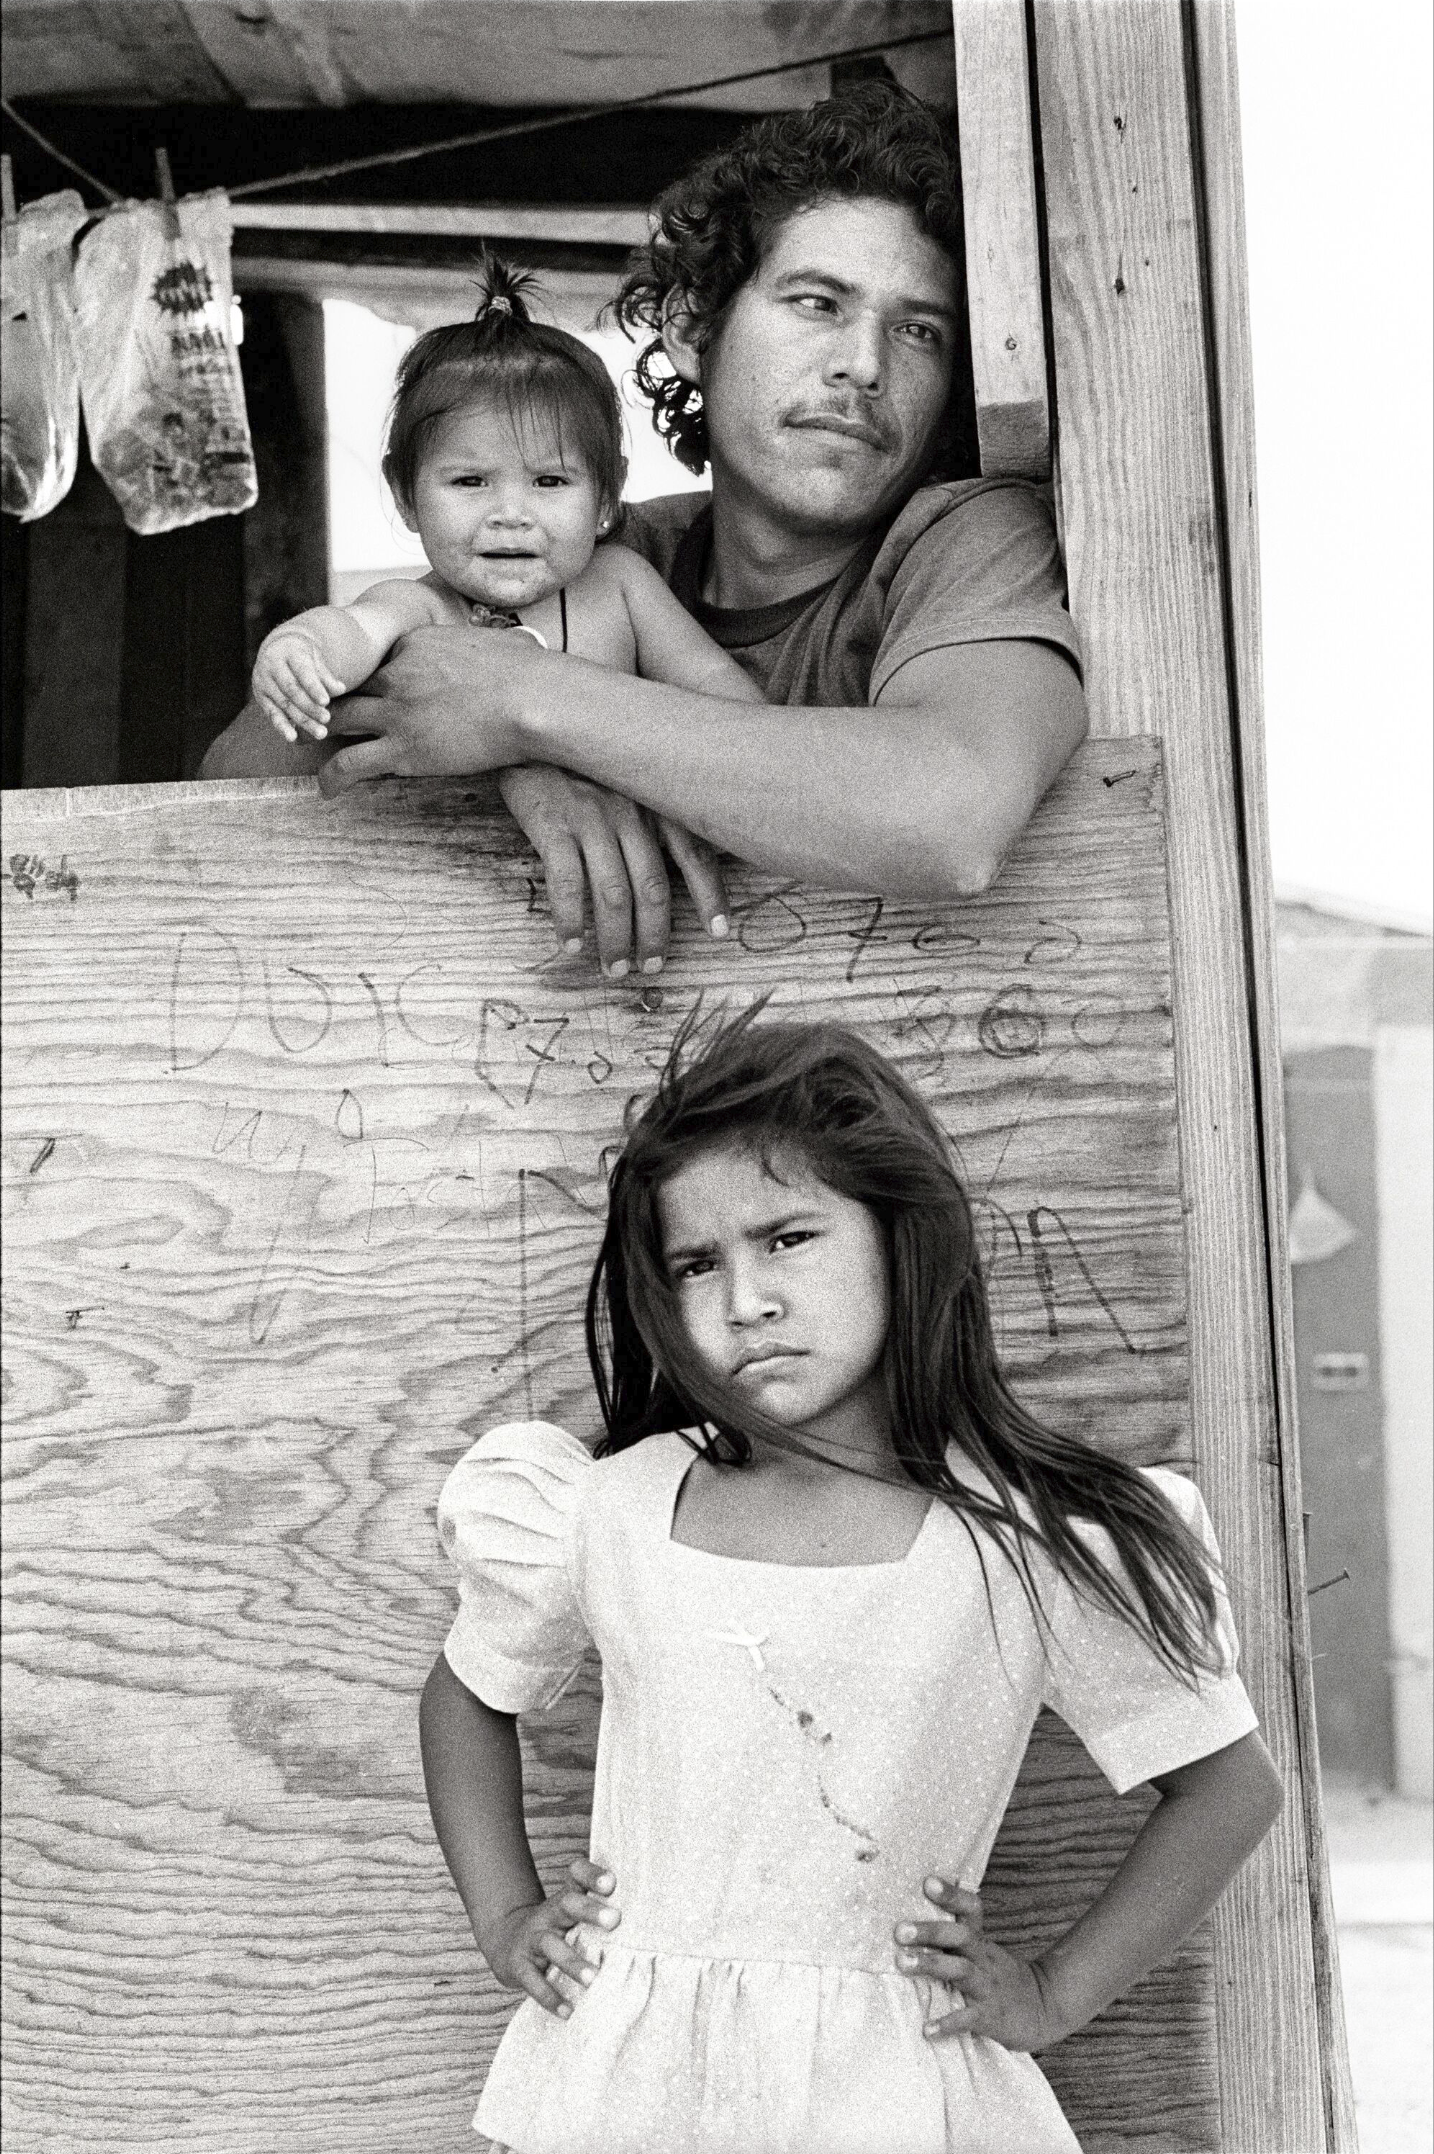 Child with Father and Sister, Colonia, Nuevo Laredo, Mexico, 1993